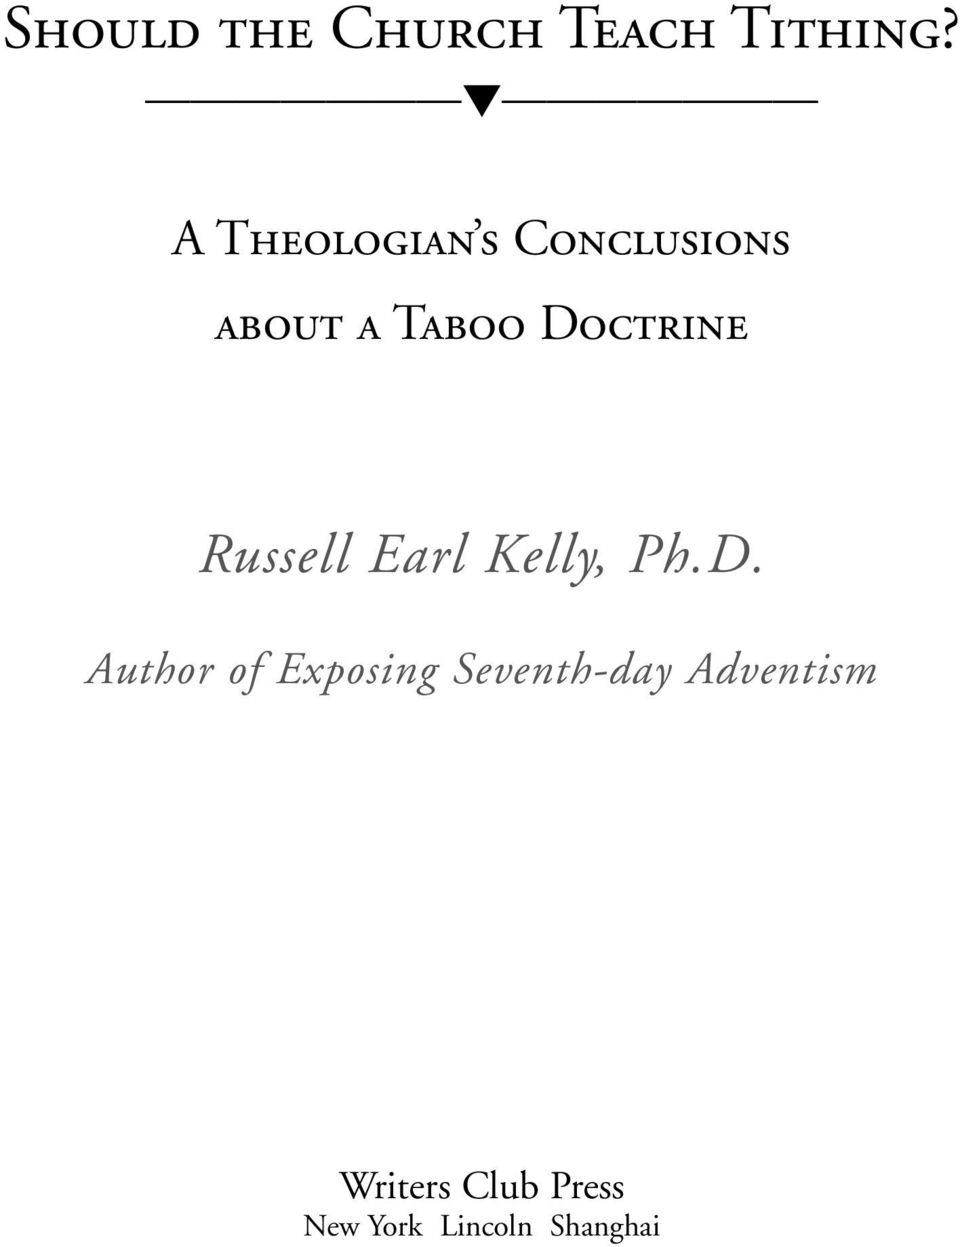 Doctrine Russell Earl Kelly, Ph.D. Author of